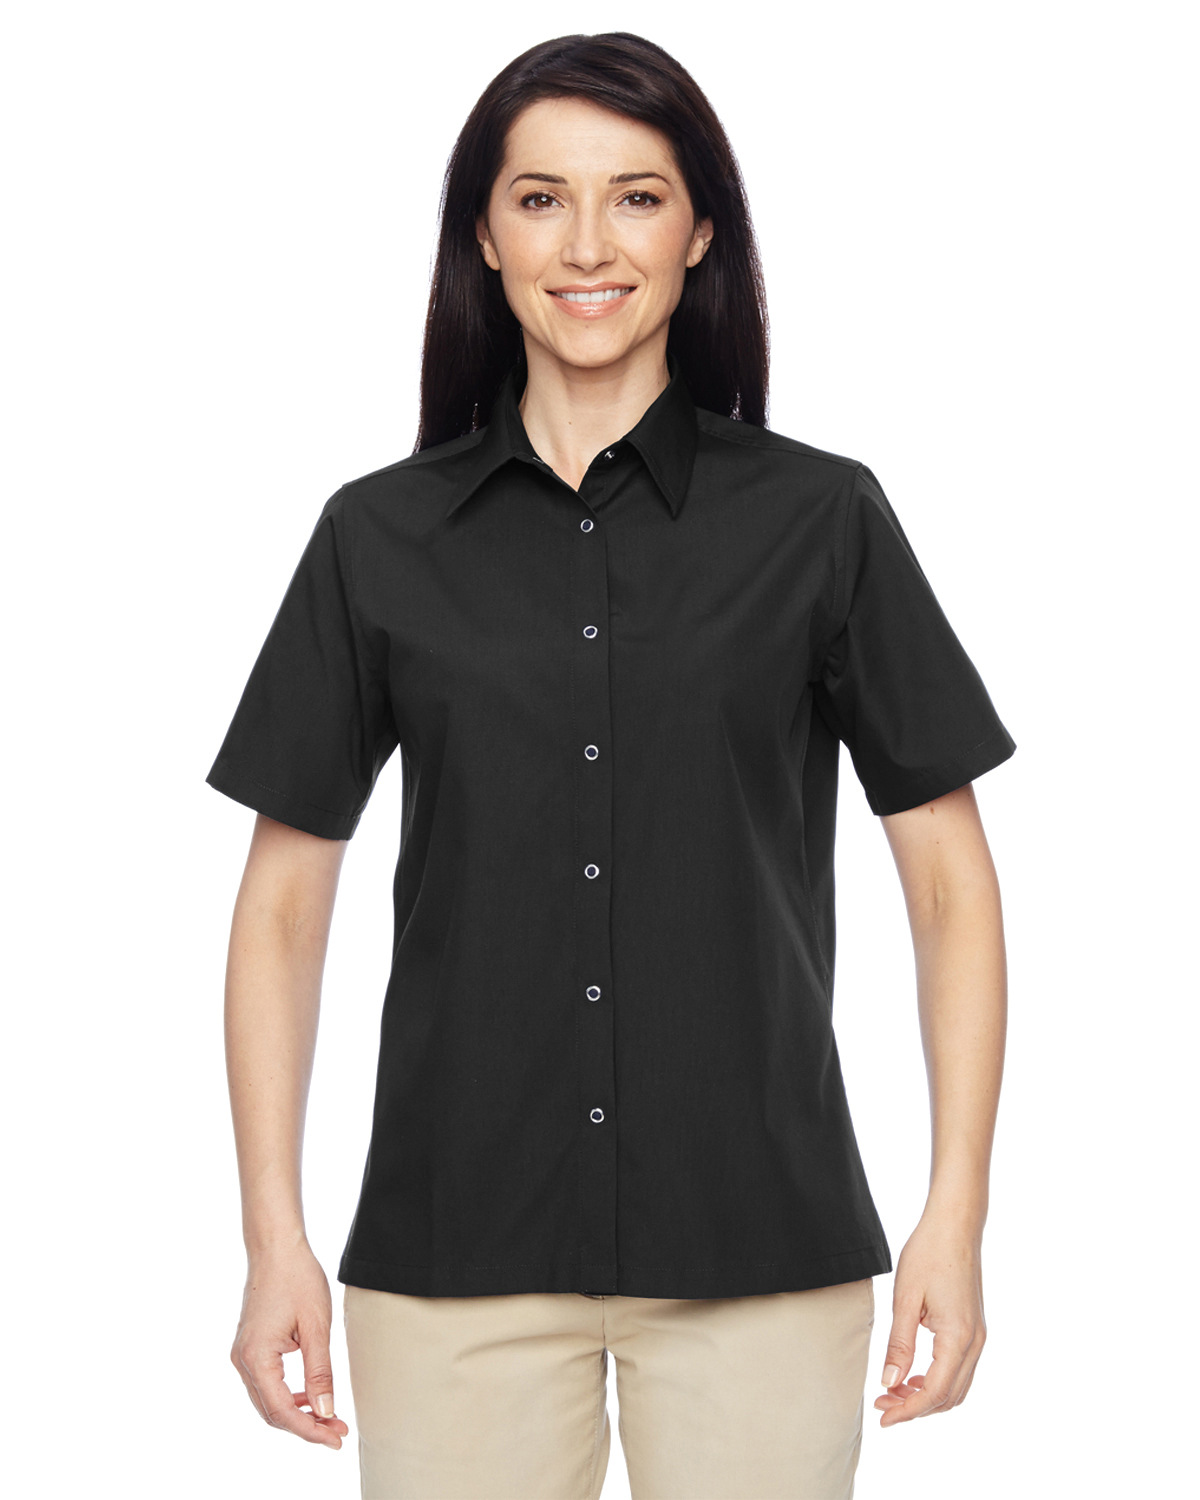 Ladies' Advantage Snap Closure Short-Sleeve Shirt